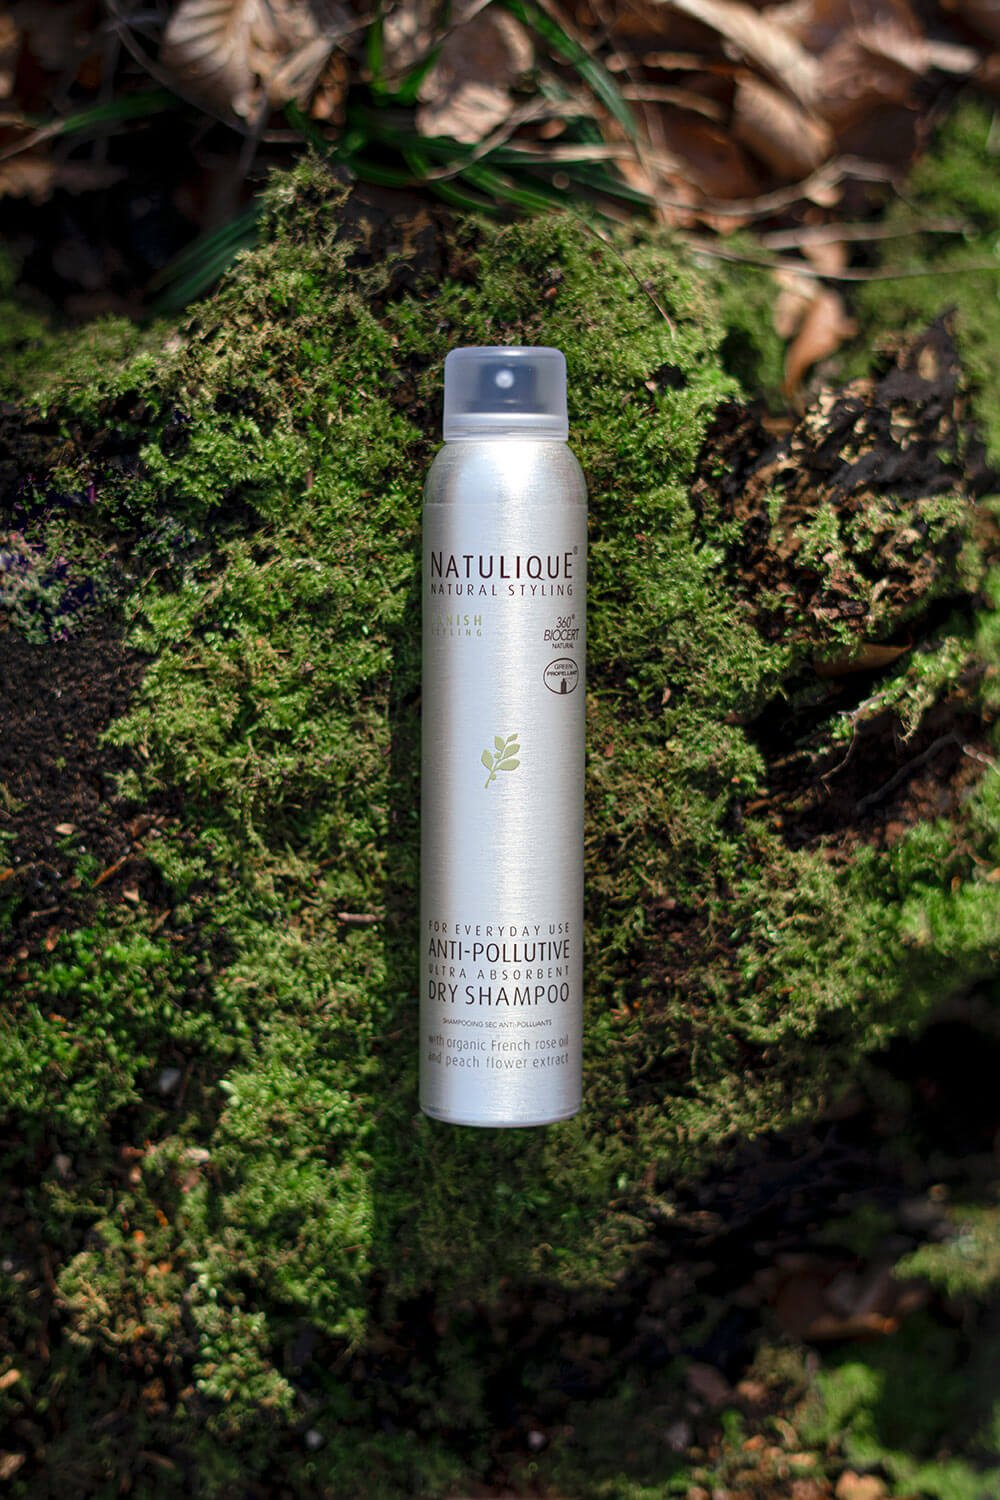 anti-pollutive dry shampoo